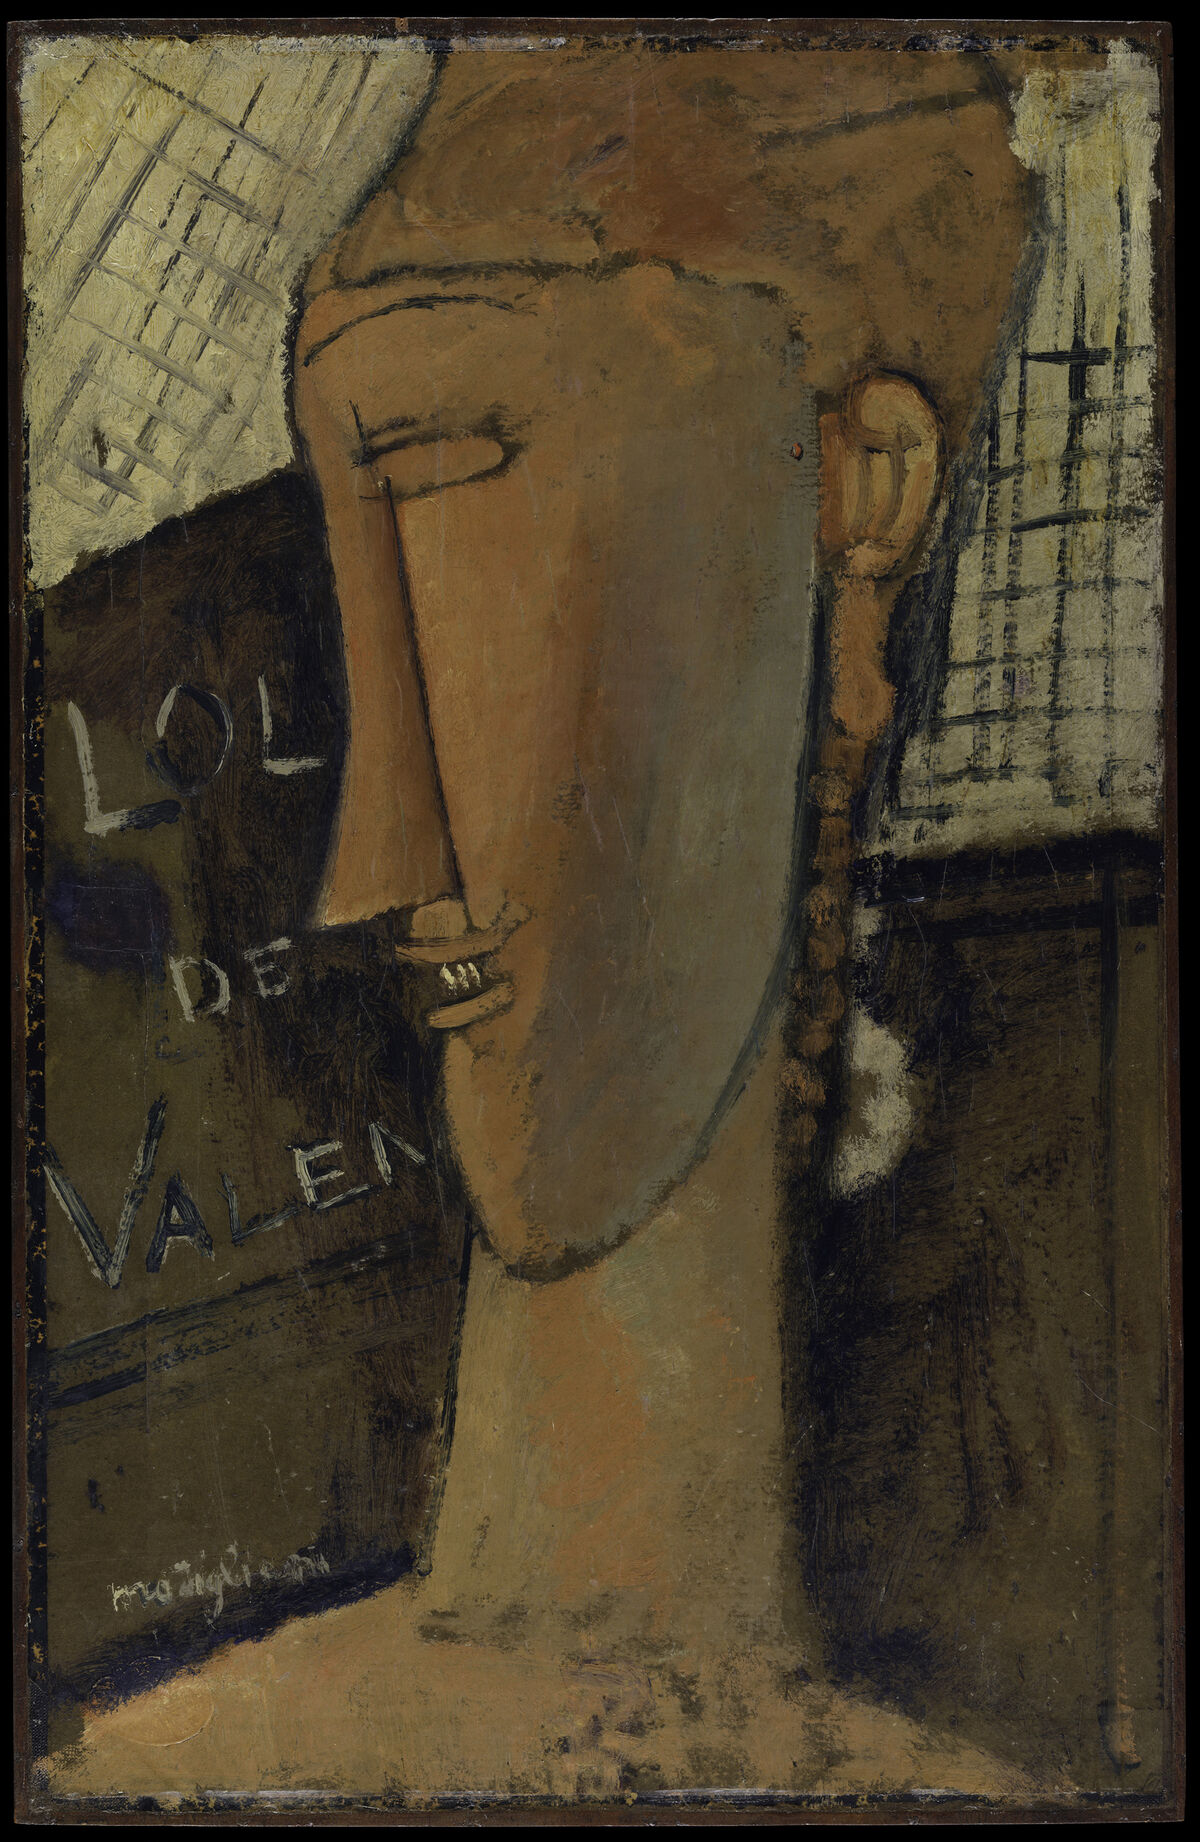 Amedeo Modigliani, Lola de Valence, 1915. Metropolitan Museum of Art, New York. Courtesy of the Jewish Museum.